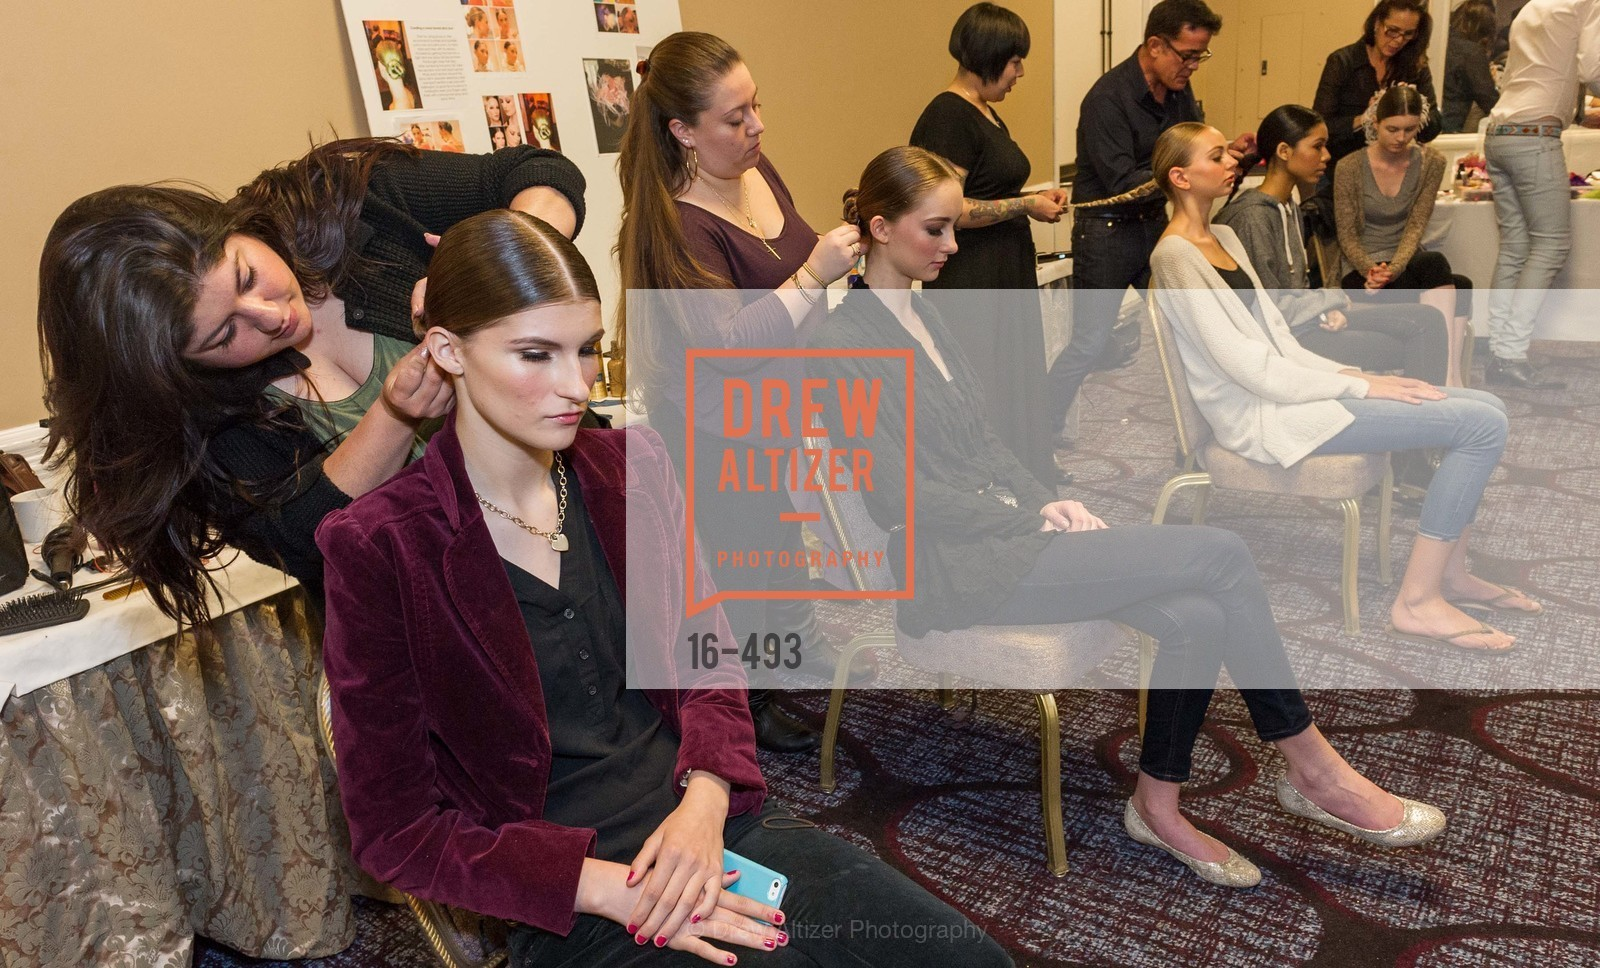 Janet Mariscao, Makenna Spellman, SAN FRANCISCO BALLET AUXULIARY 2014 Fashion Show, US. The Fairmont, April 3rd, 2014,Drew Altizer, Drew Altizer Photography, full-service agency, private events, San Francisco photographer, photographer california